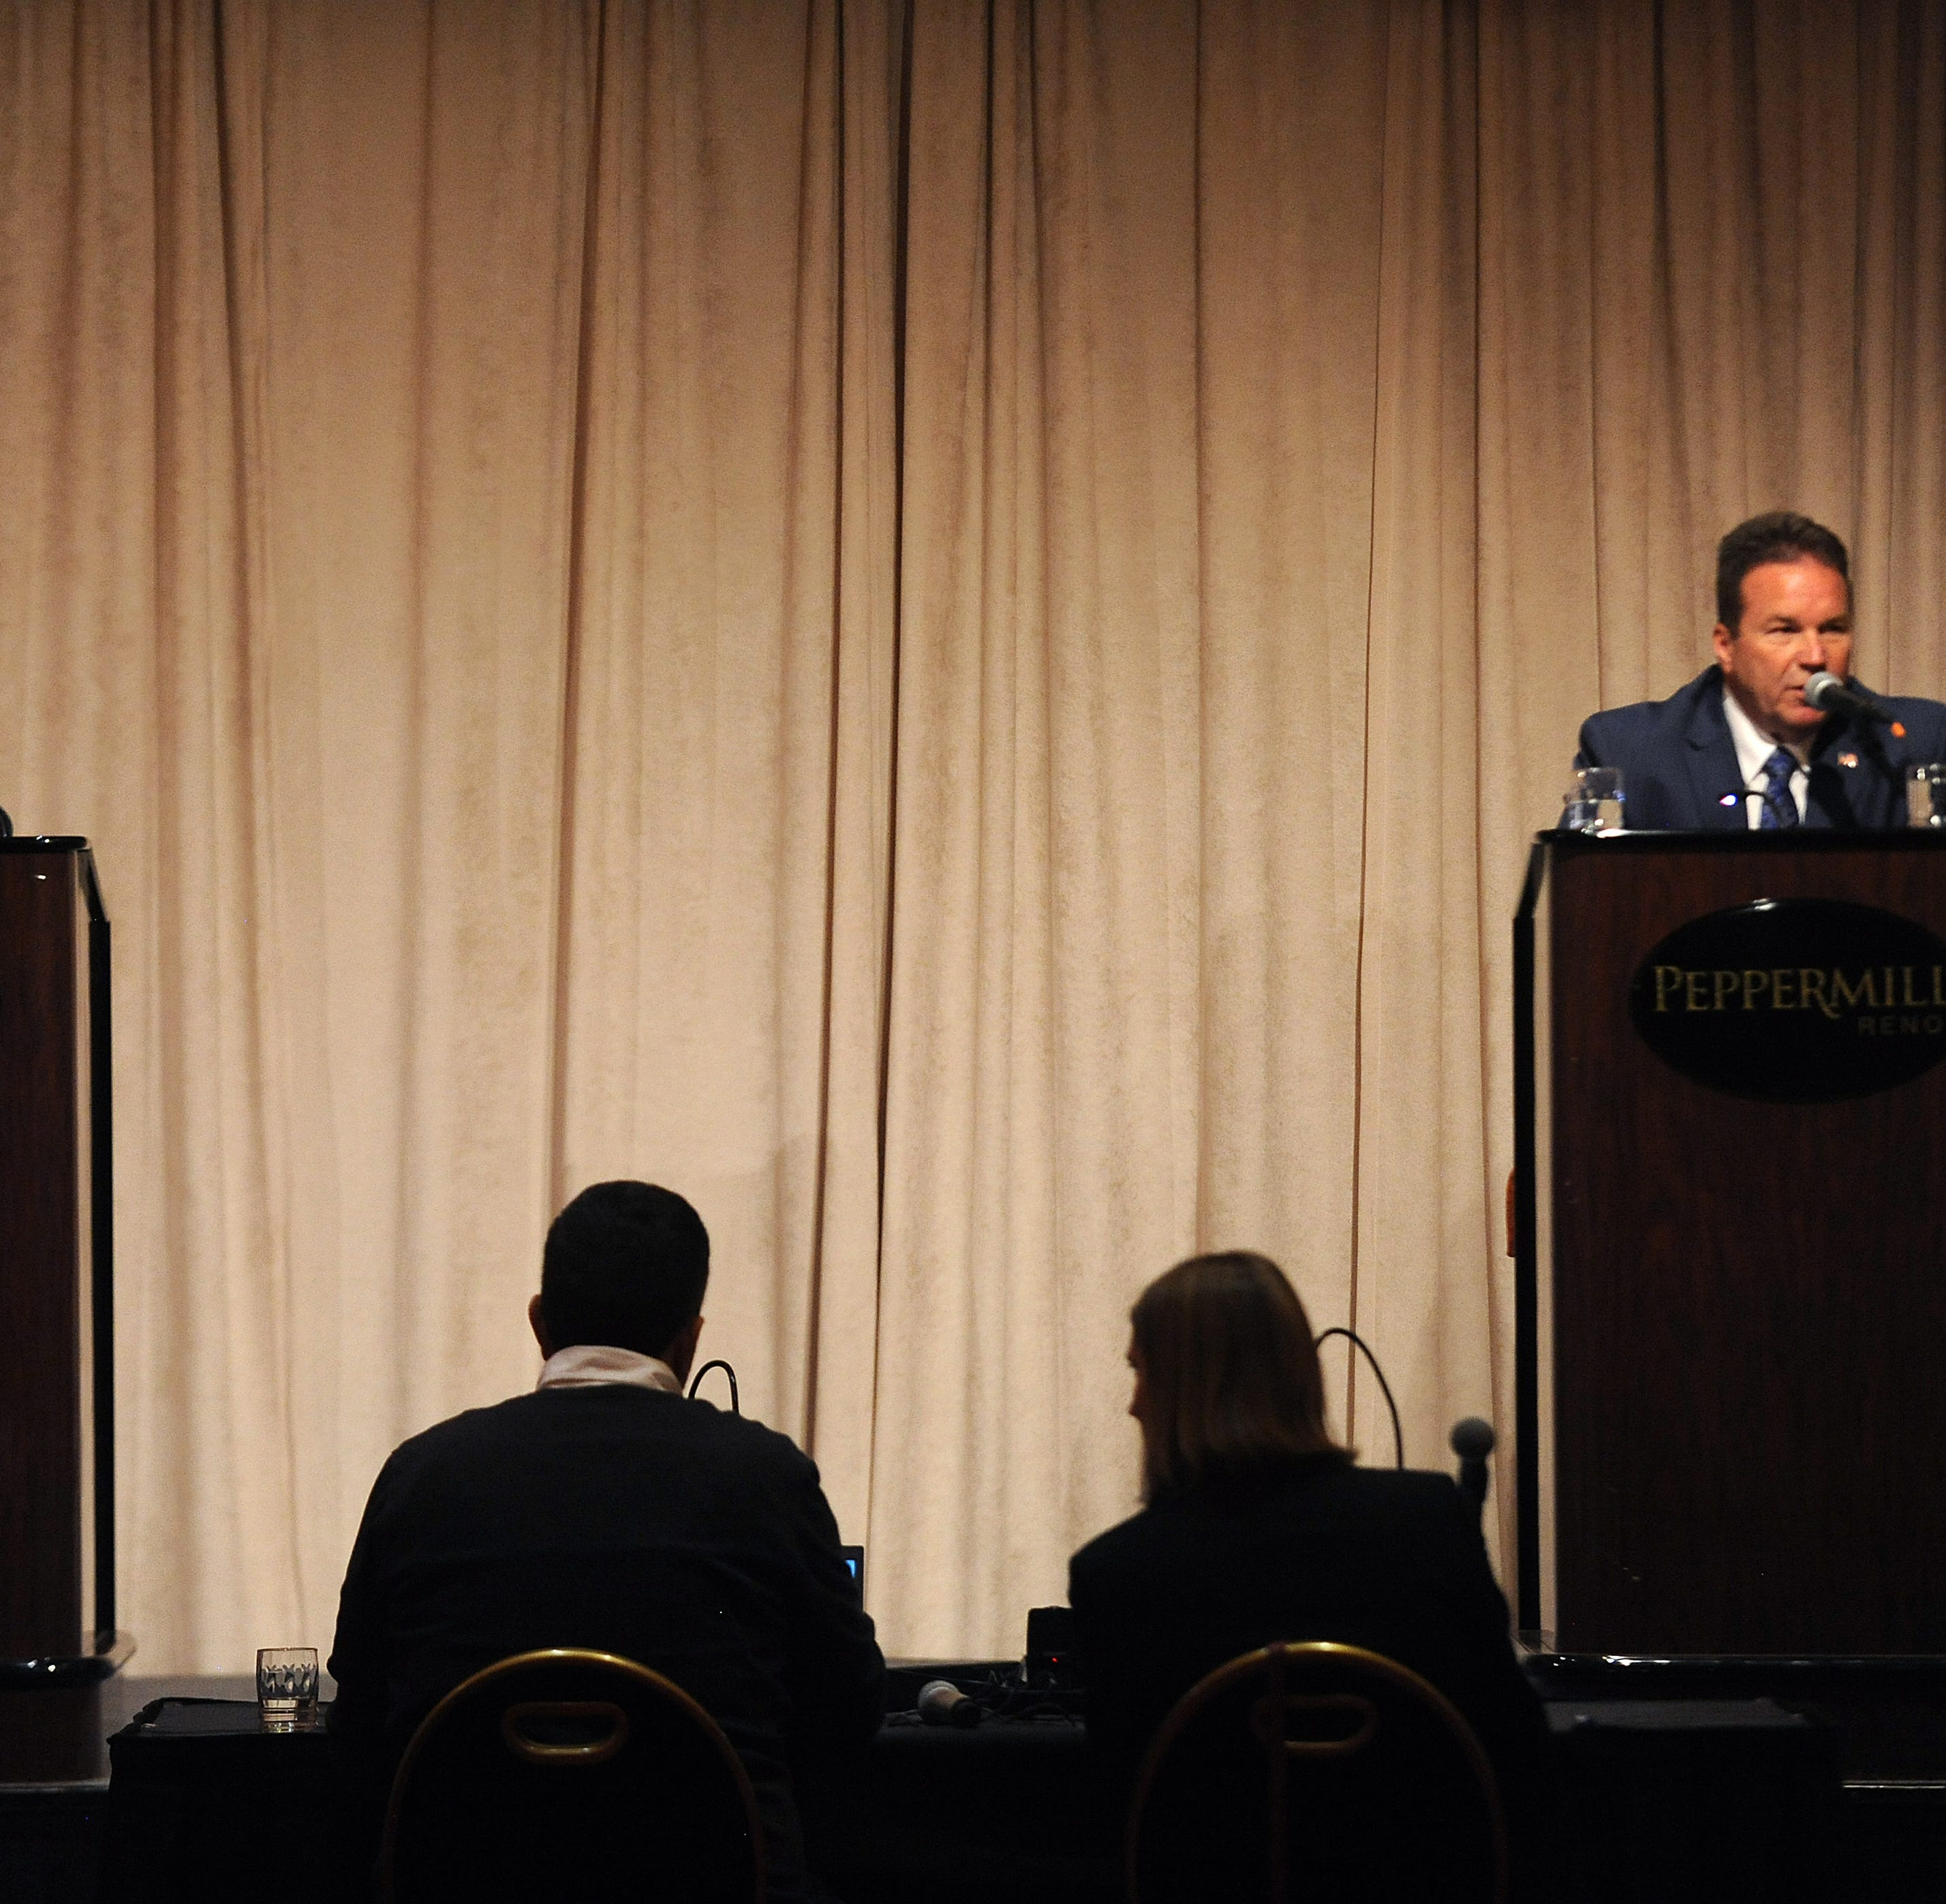 Missed the Reno mayor debate? Here are the top moments from the Schieve, Lorton faceoff